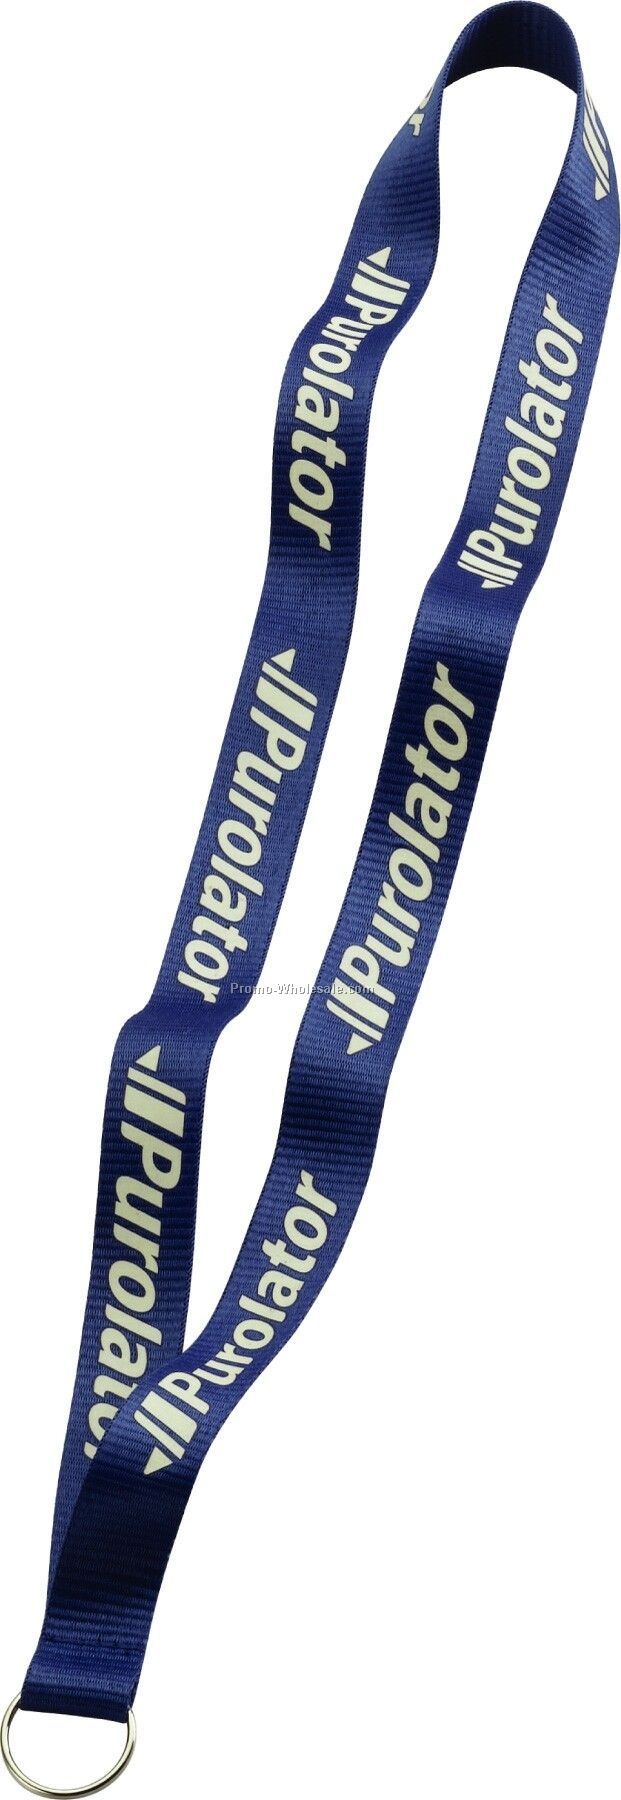 "3/4"" Imported Polyester Glow Imprint Lanyard With Sewn Split Ring"